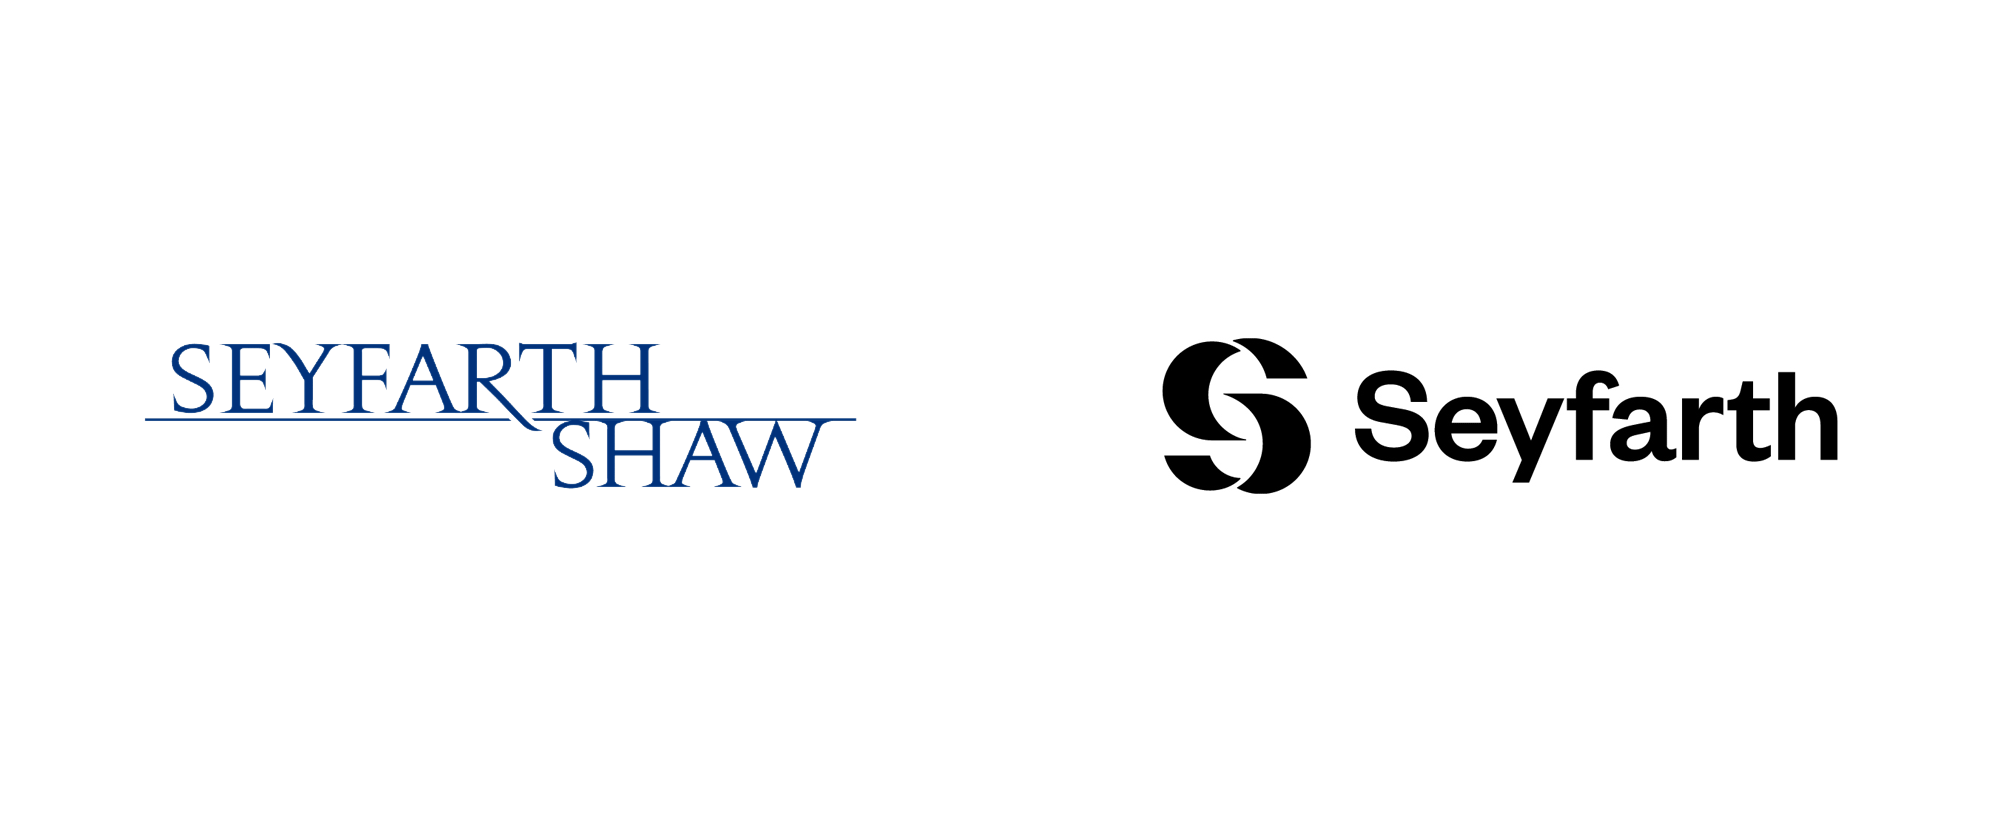 New Logo and Identity for Seyfarth by Carbone Smolan Agency